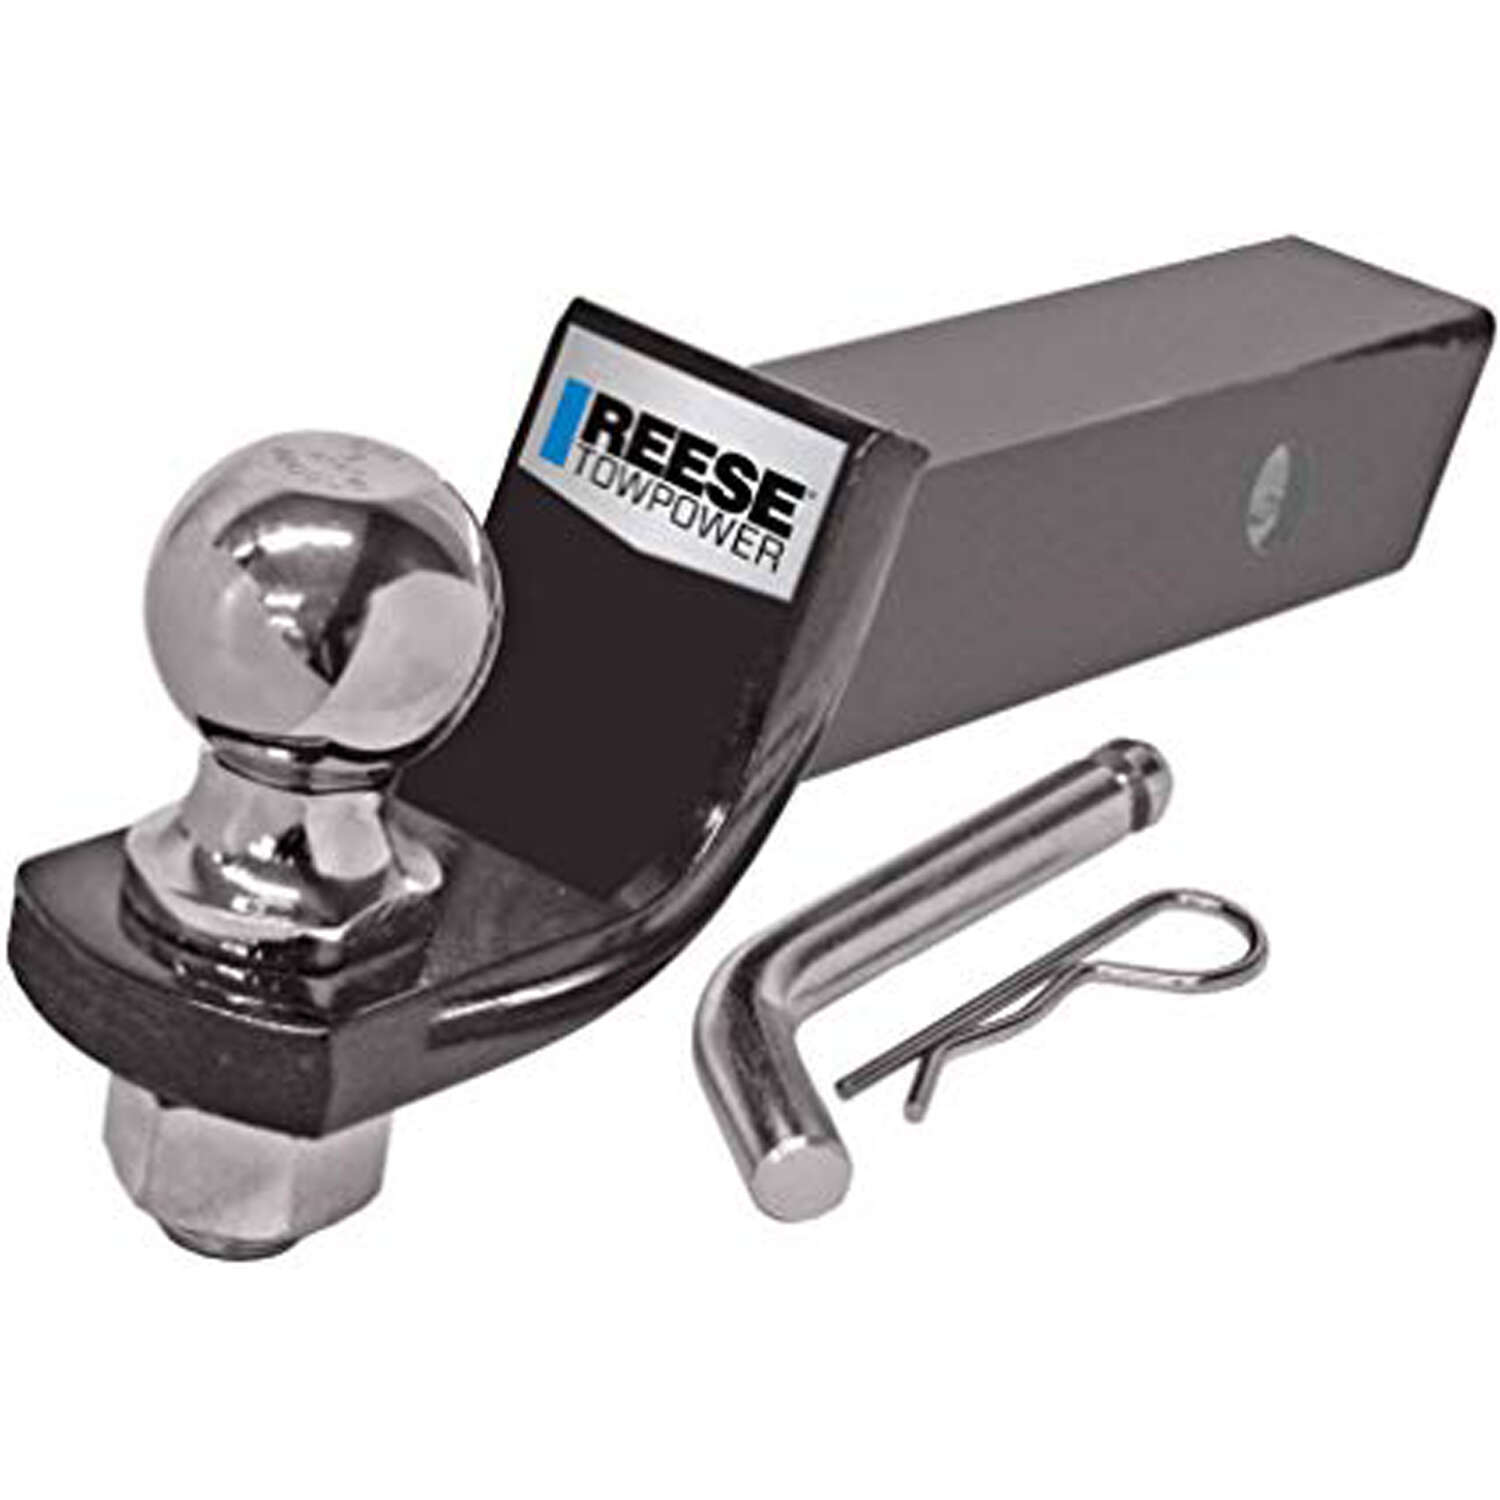 Reese Towpower  Tacticle  5000 lb. capacity Hitch Starter Kit